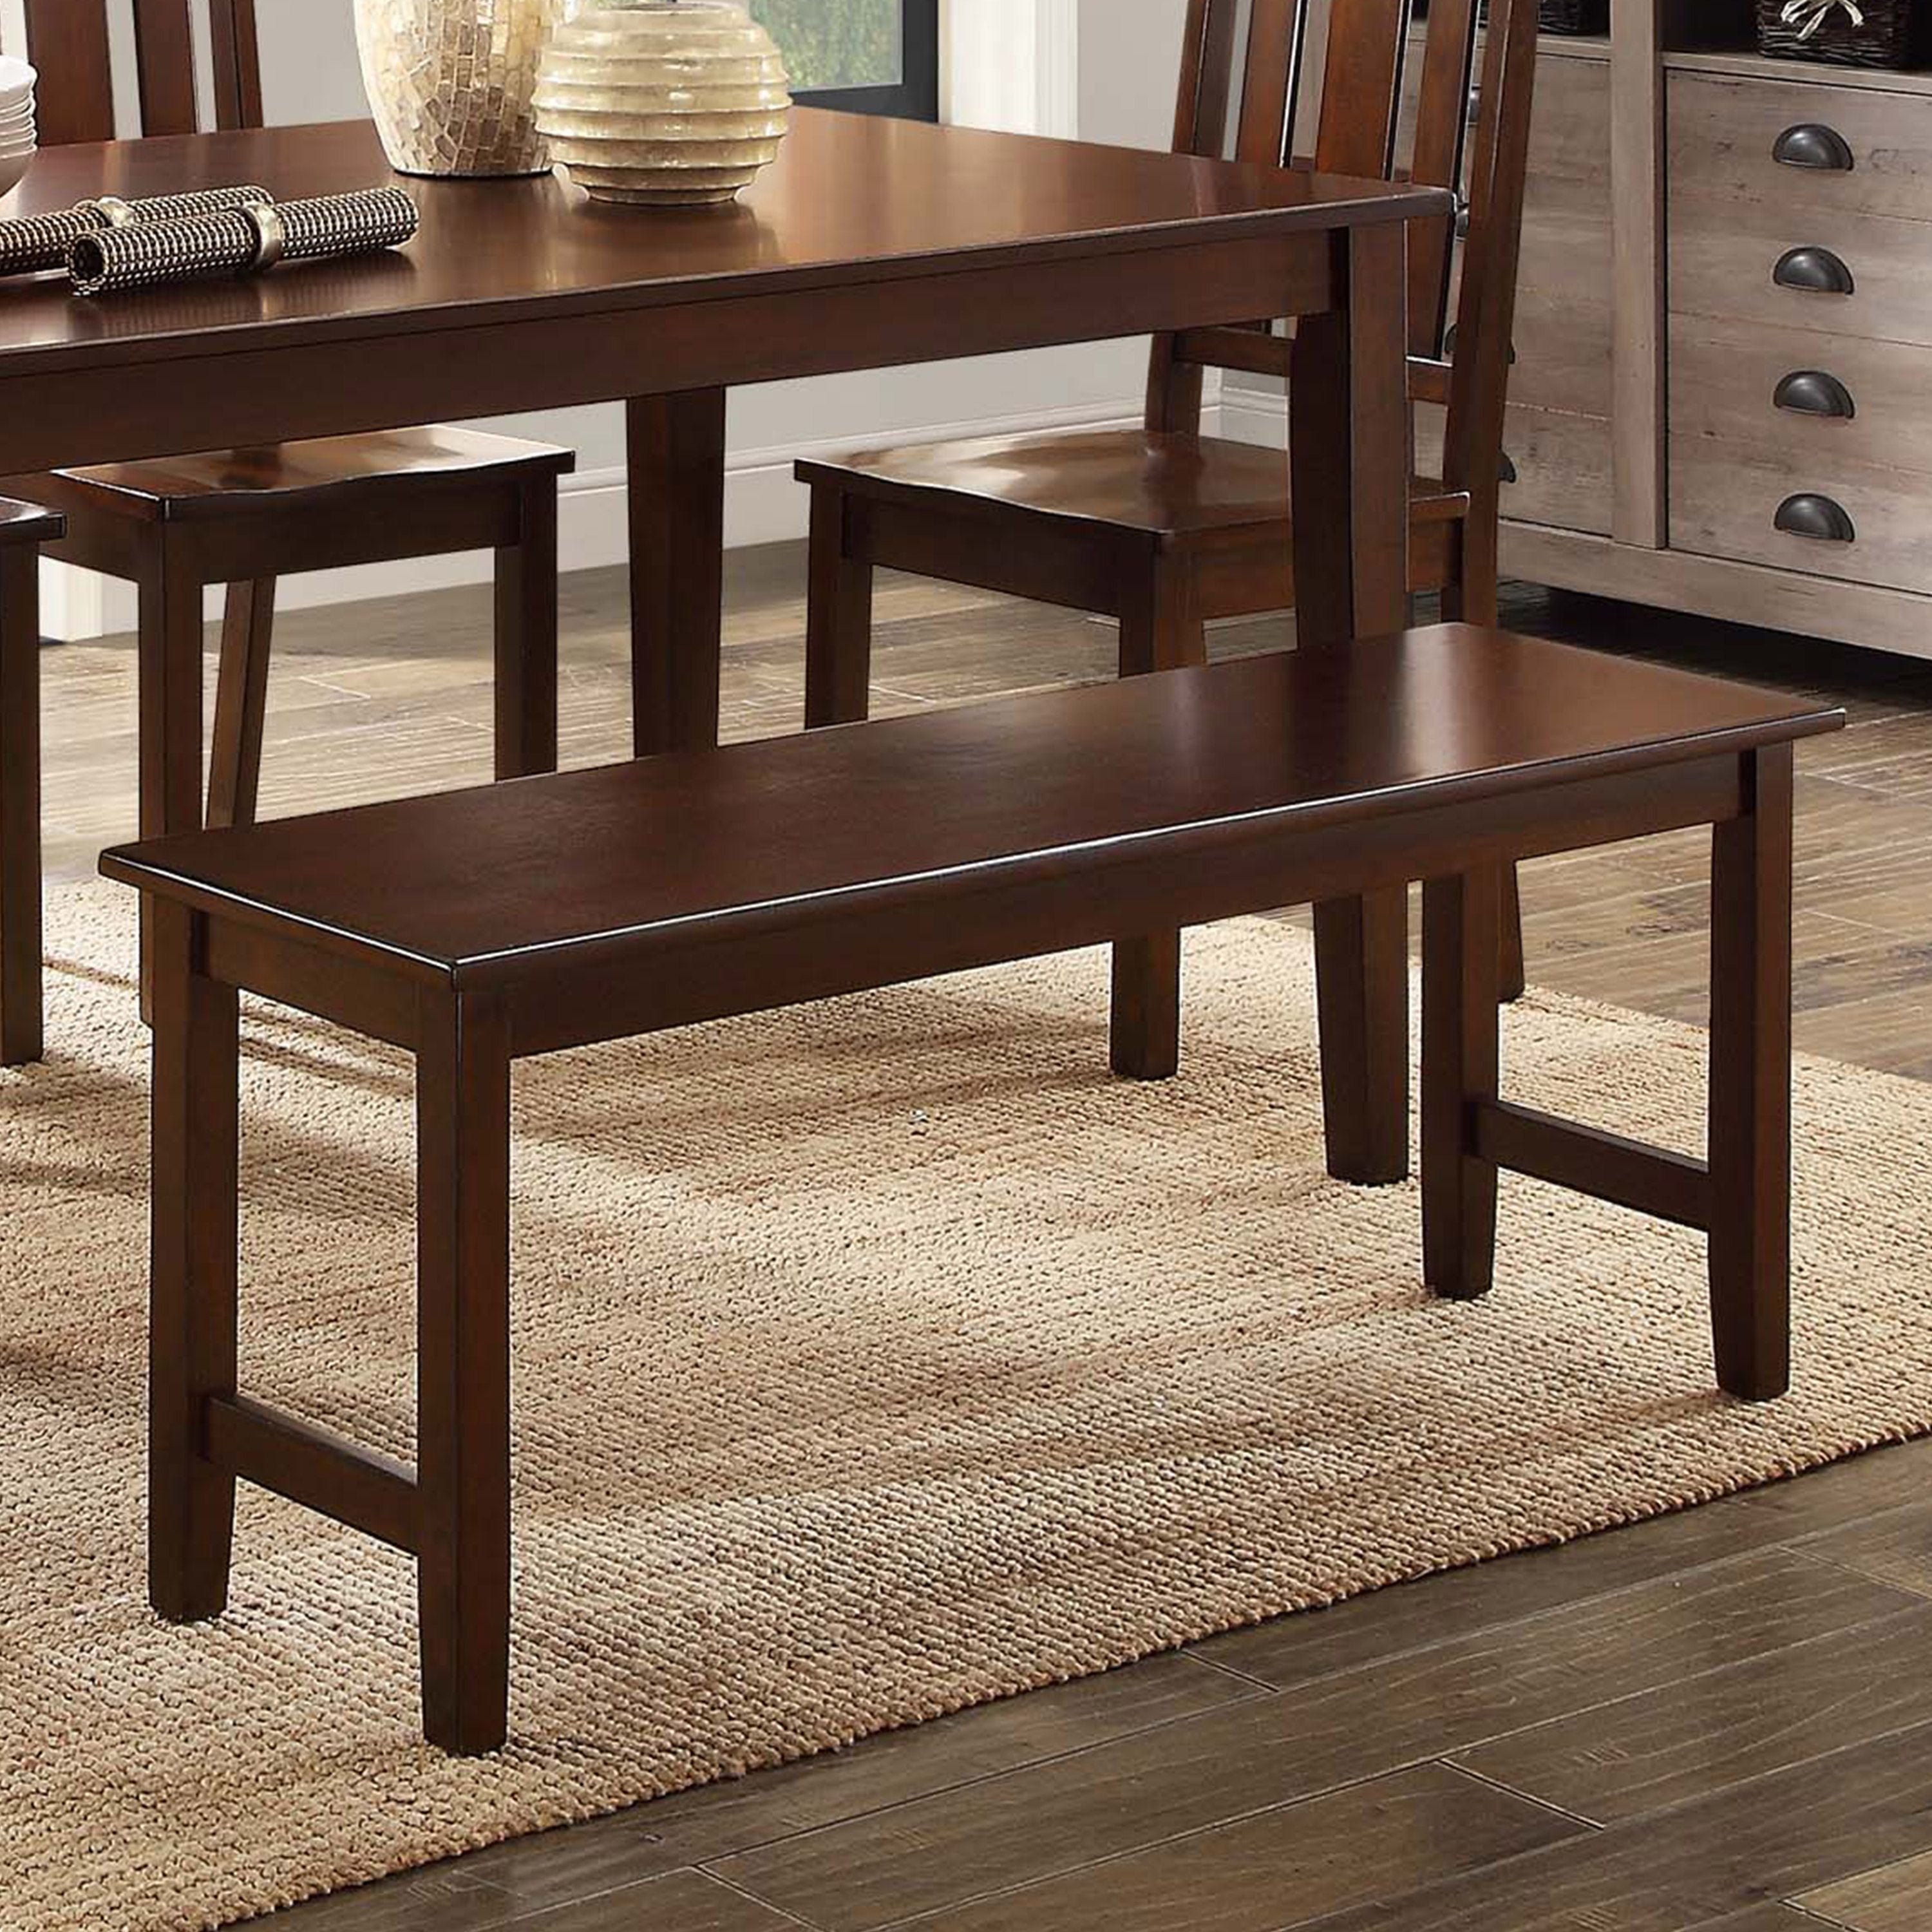 fb4ede1dddf052e2f9eceb034d56c511 - Better Homes And Gardens Bankston 6 Piece Dining Set Mocha